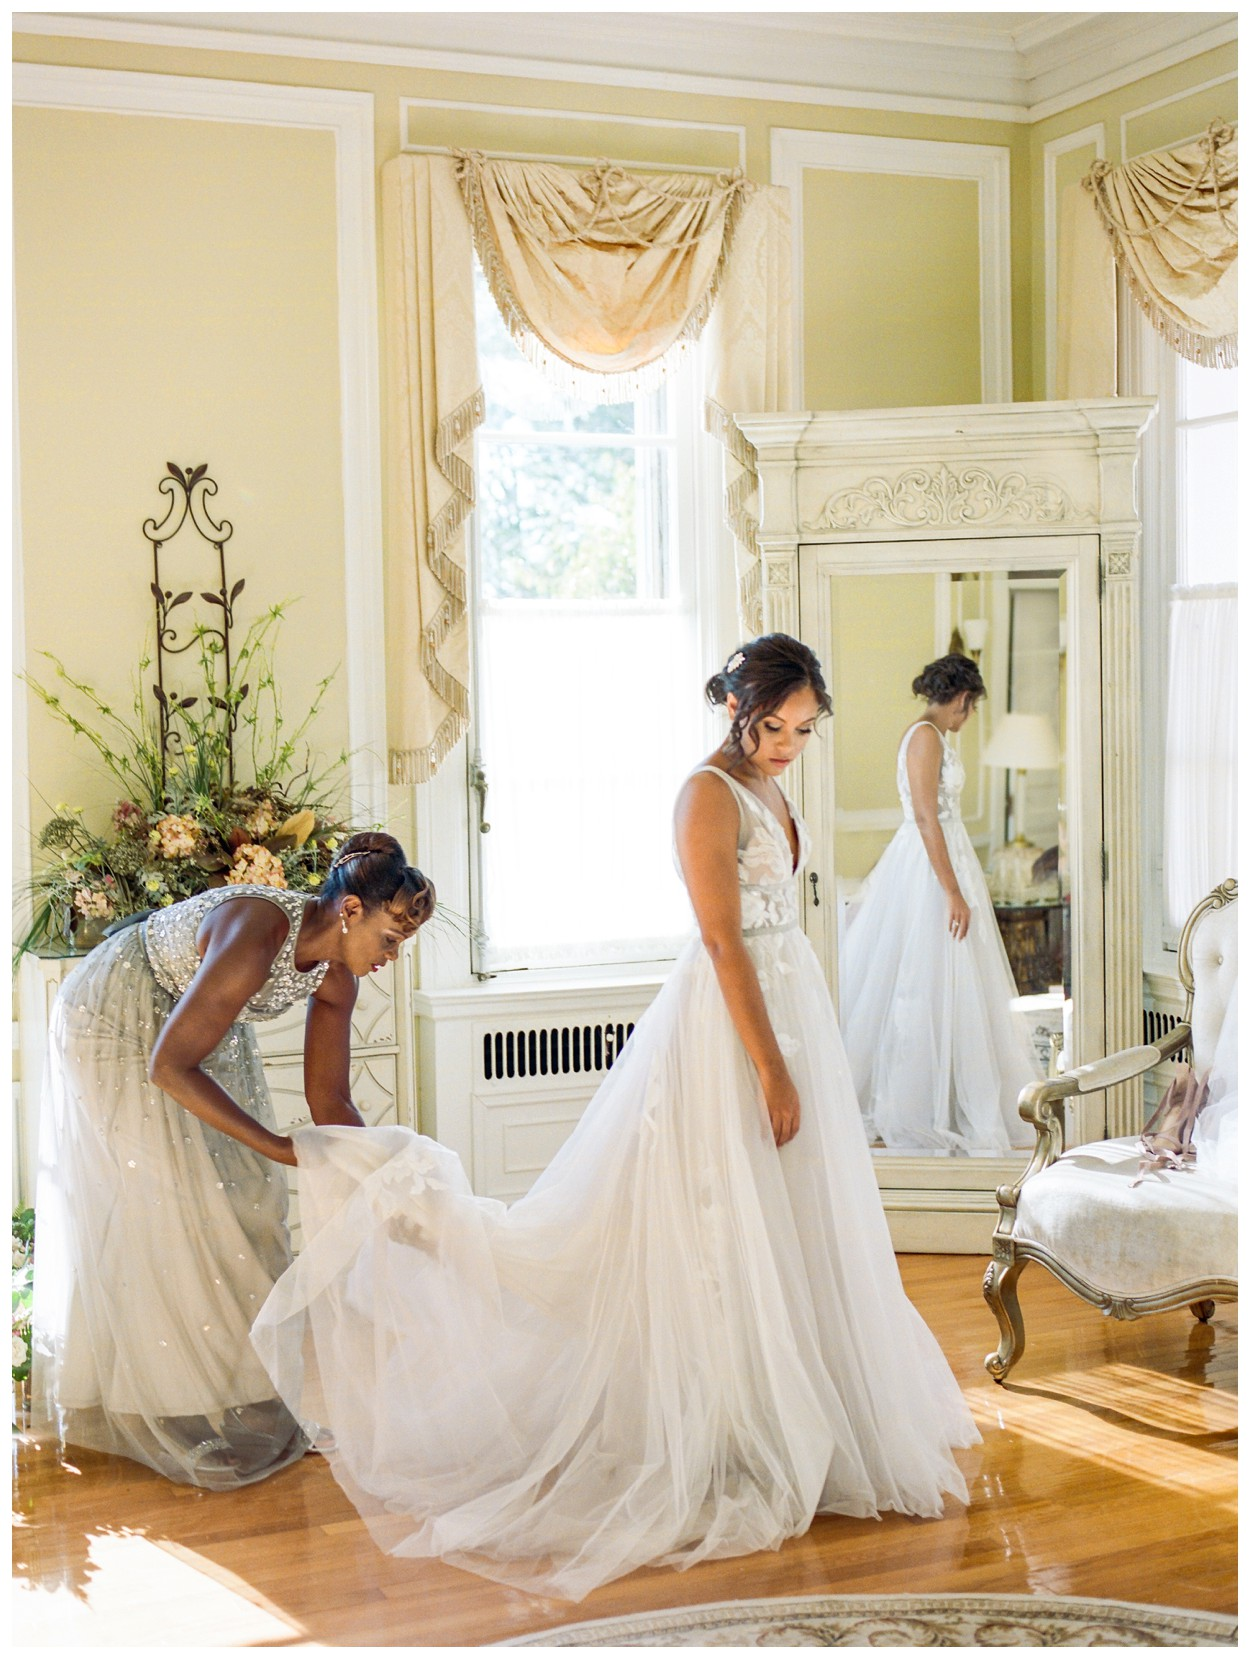 Sun drenched fall wedding in shades of pink at Oxon Hill Manor in Maryland beautiful bride getting ready with her mom by fine art wedding photographer Lissa Ryan Photography